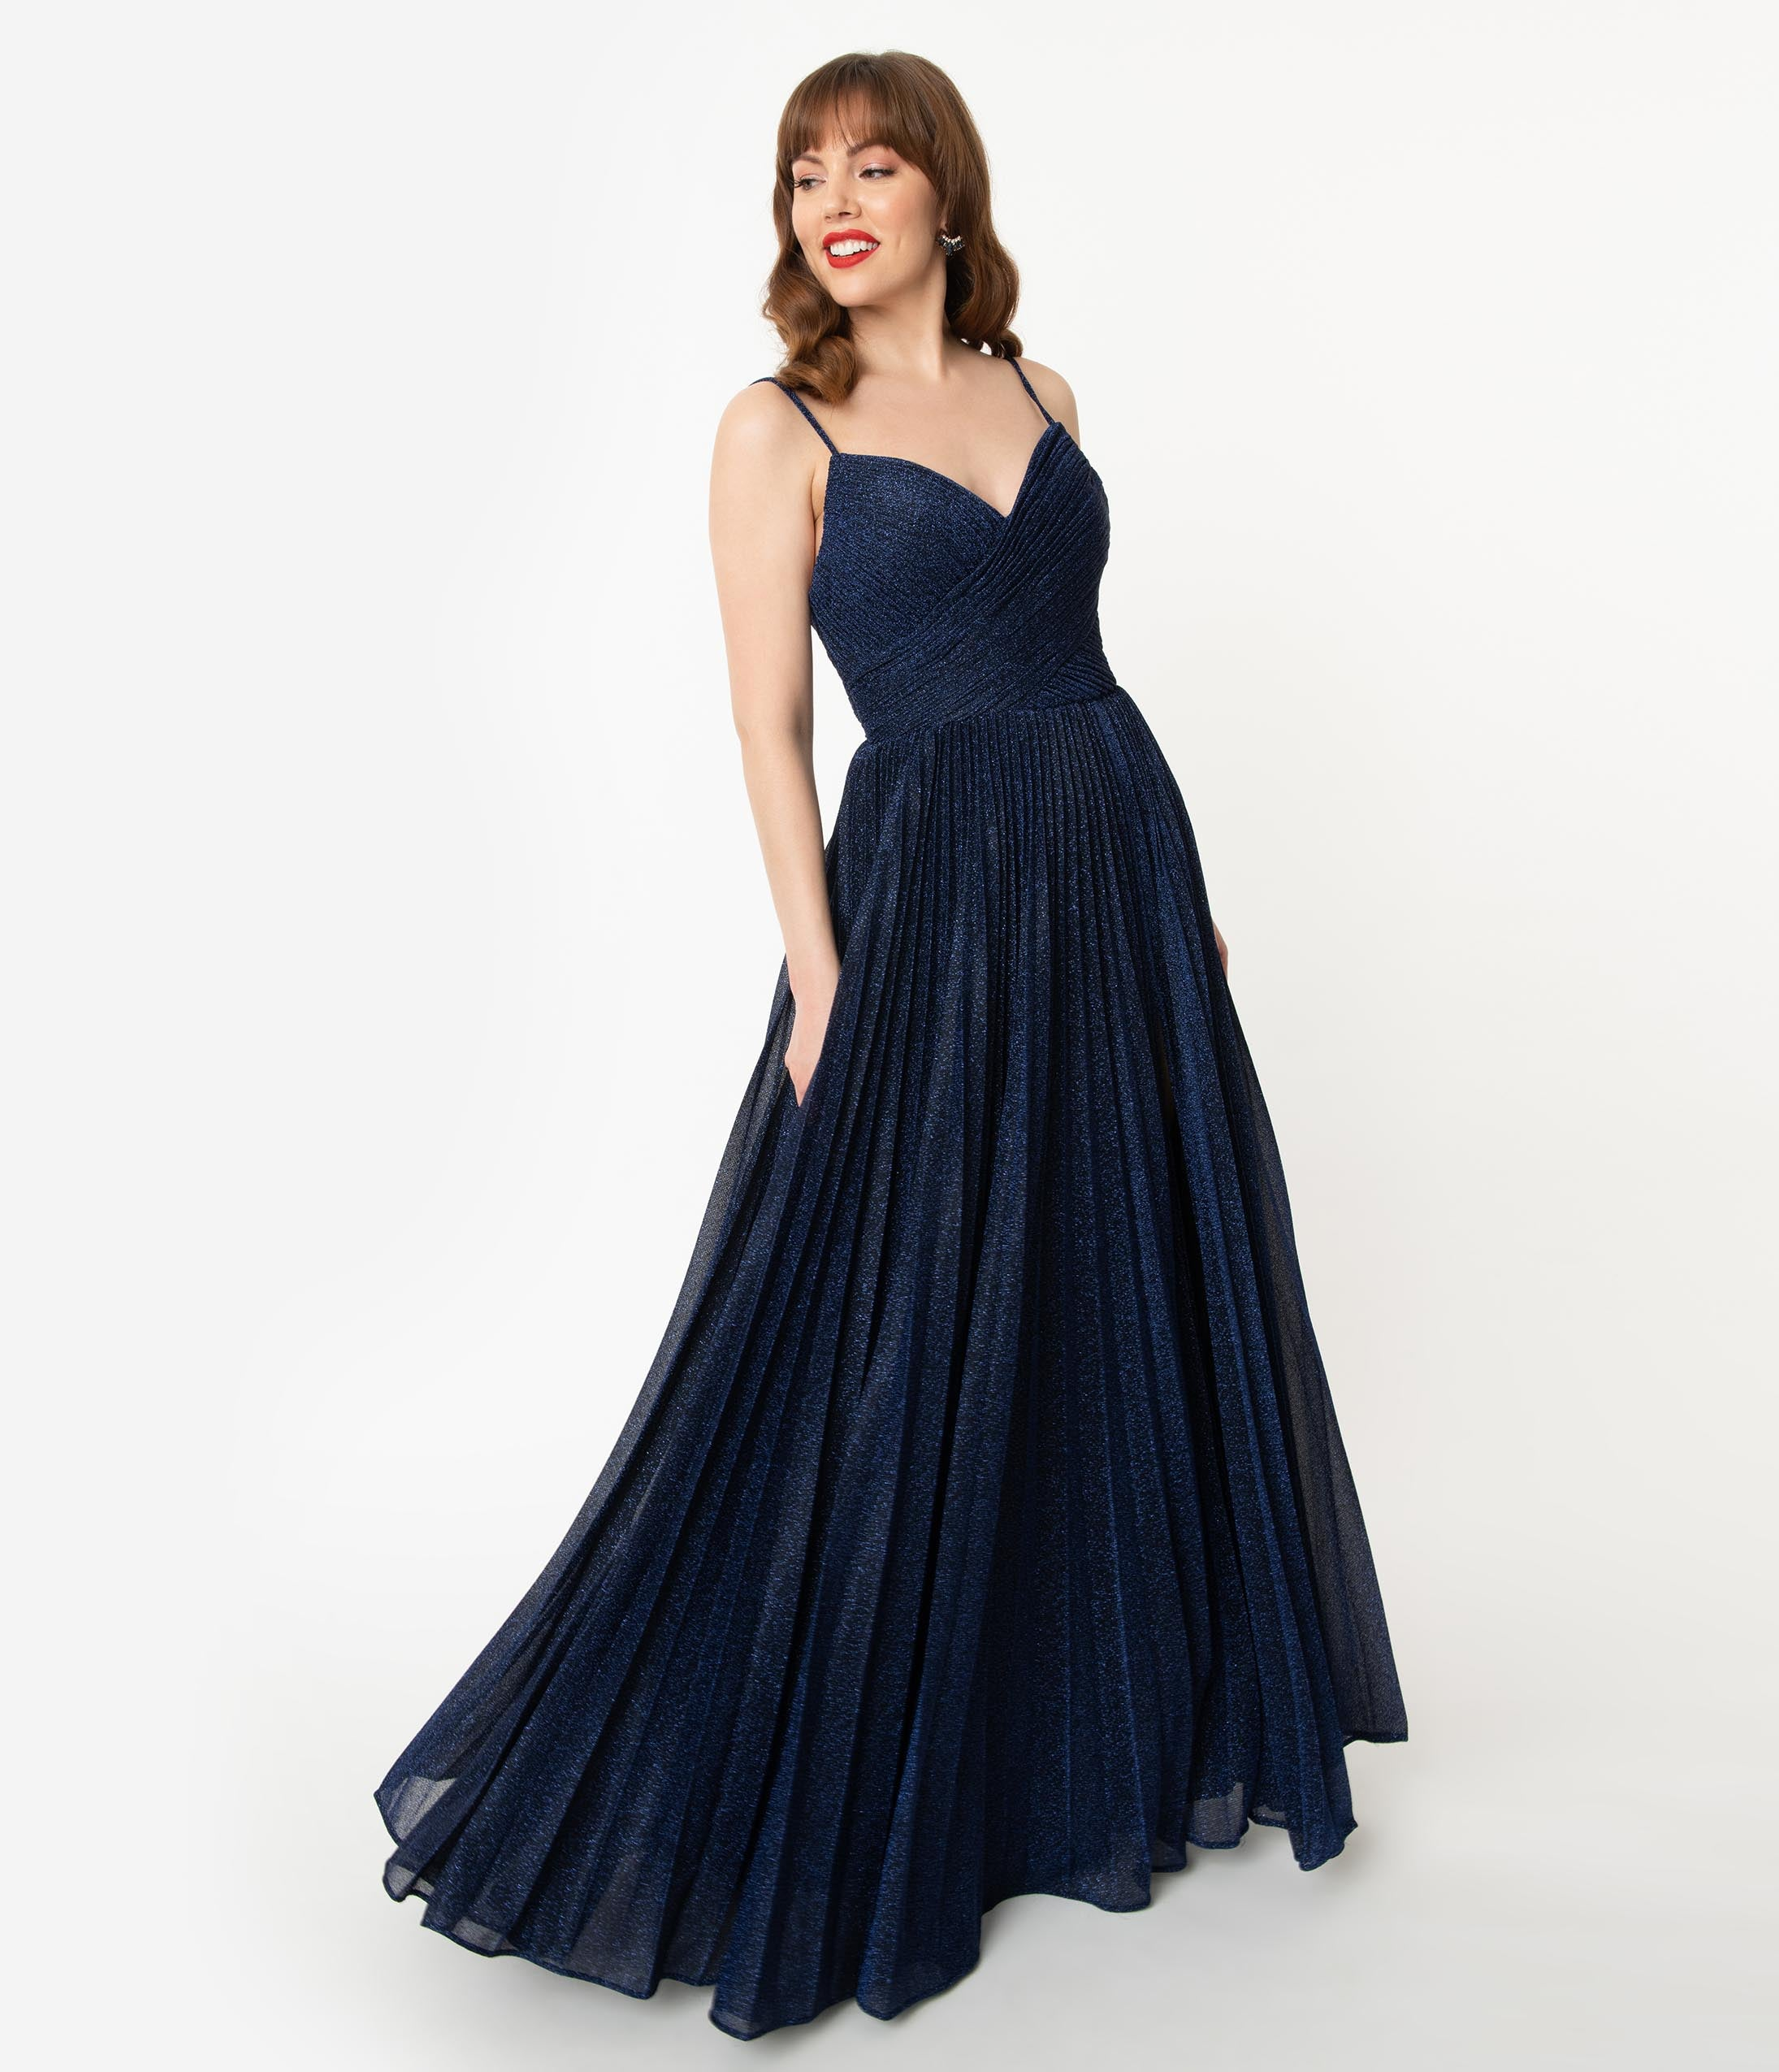 1930s Evening Dresses | Old Hollywood Silver Screen Dresses Navy Blue Sparkle Pleated Long Evening Dress $150.00 AT vintagedancer.com